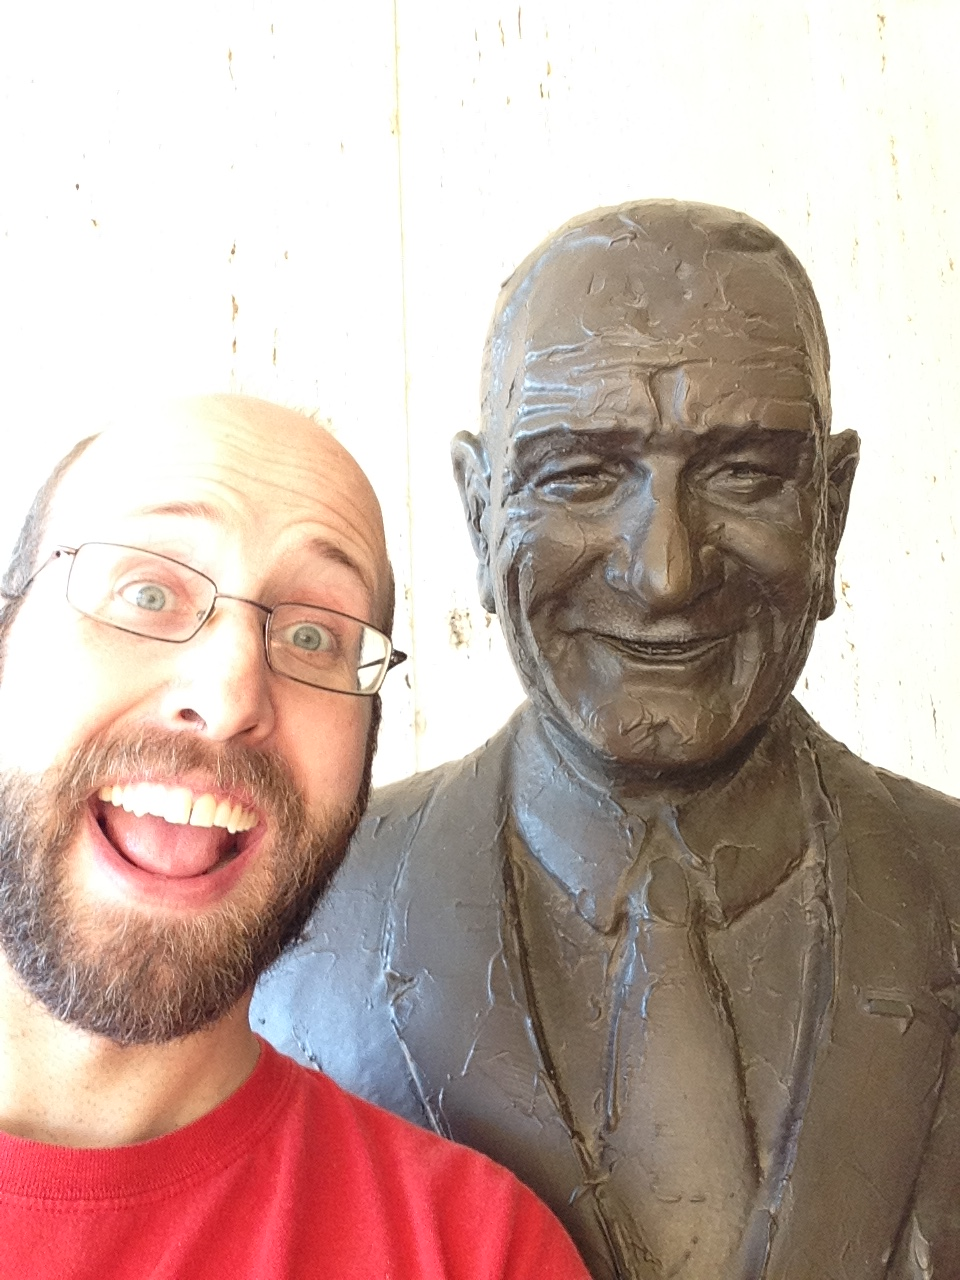 LBJ and me